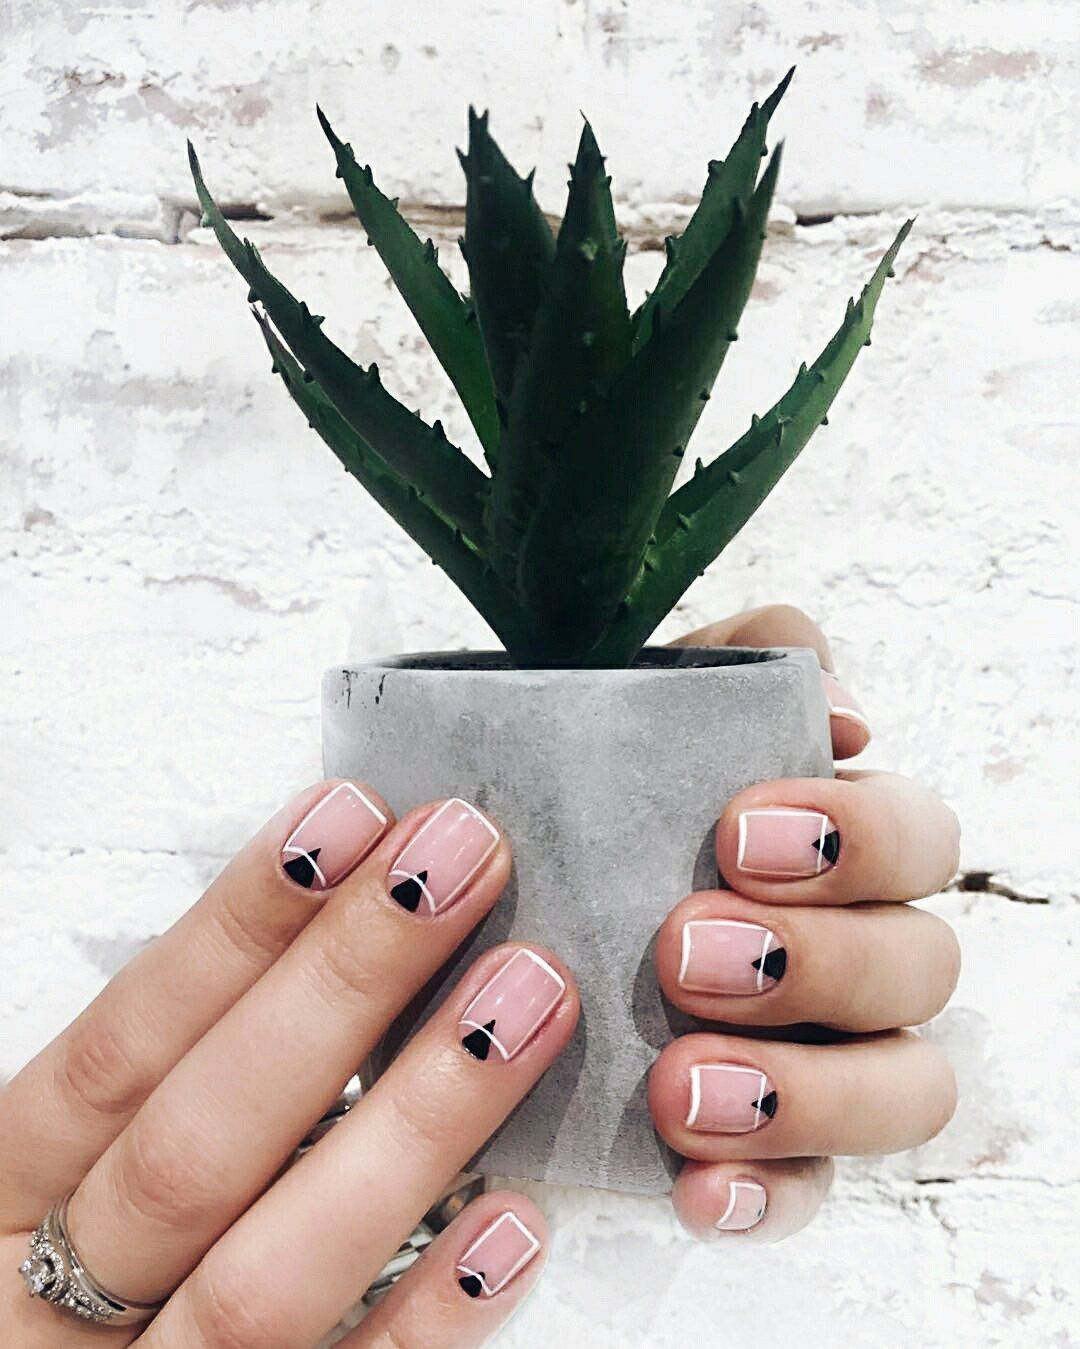 Learn Something New And Create Unique Spring Nail Designs